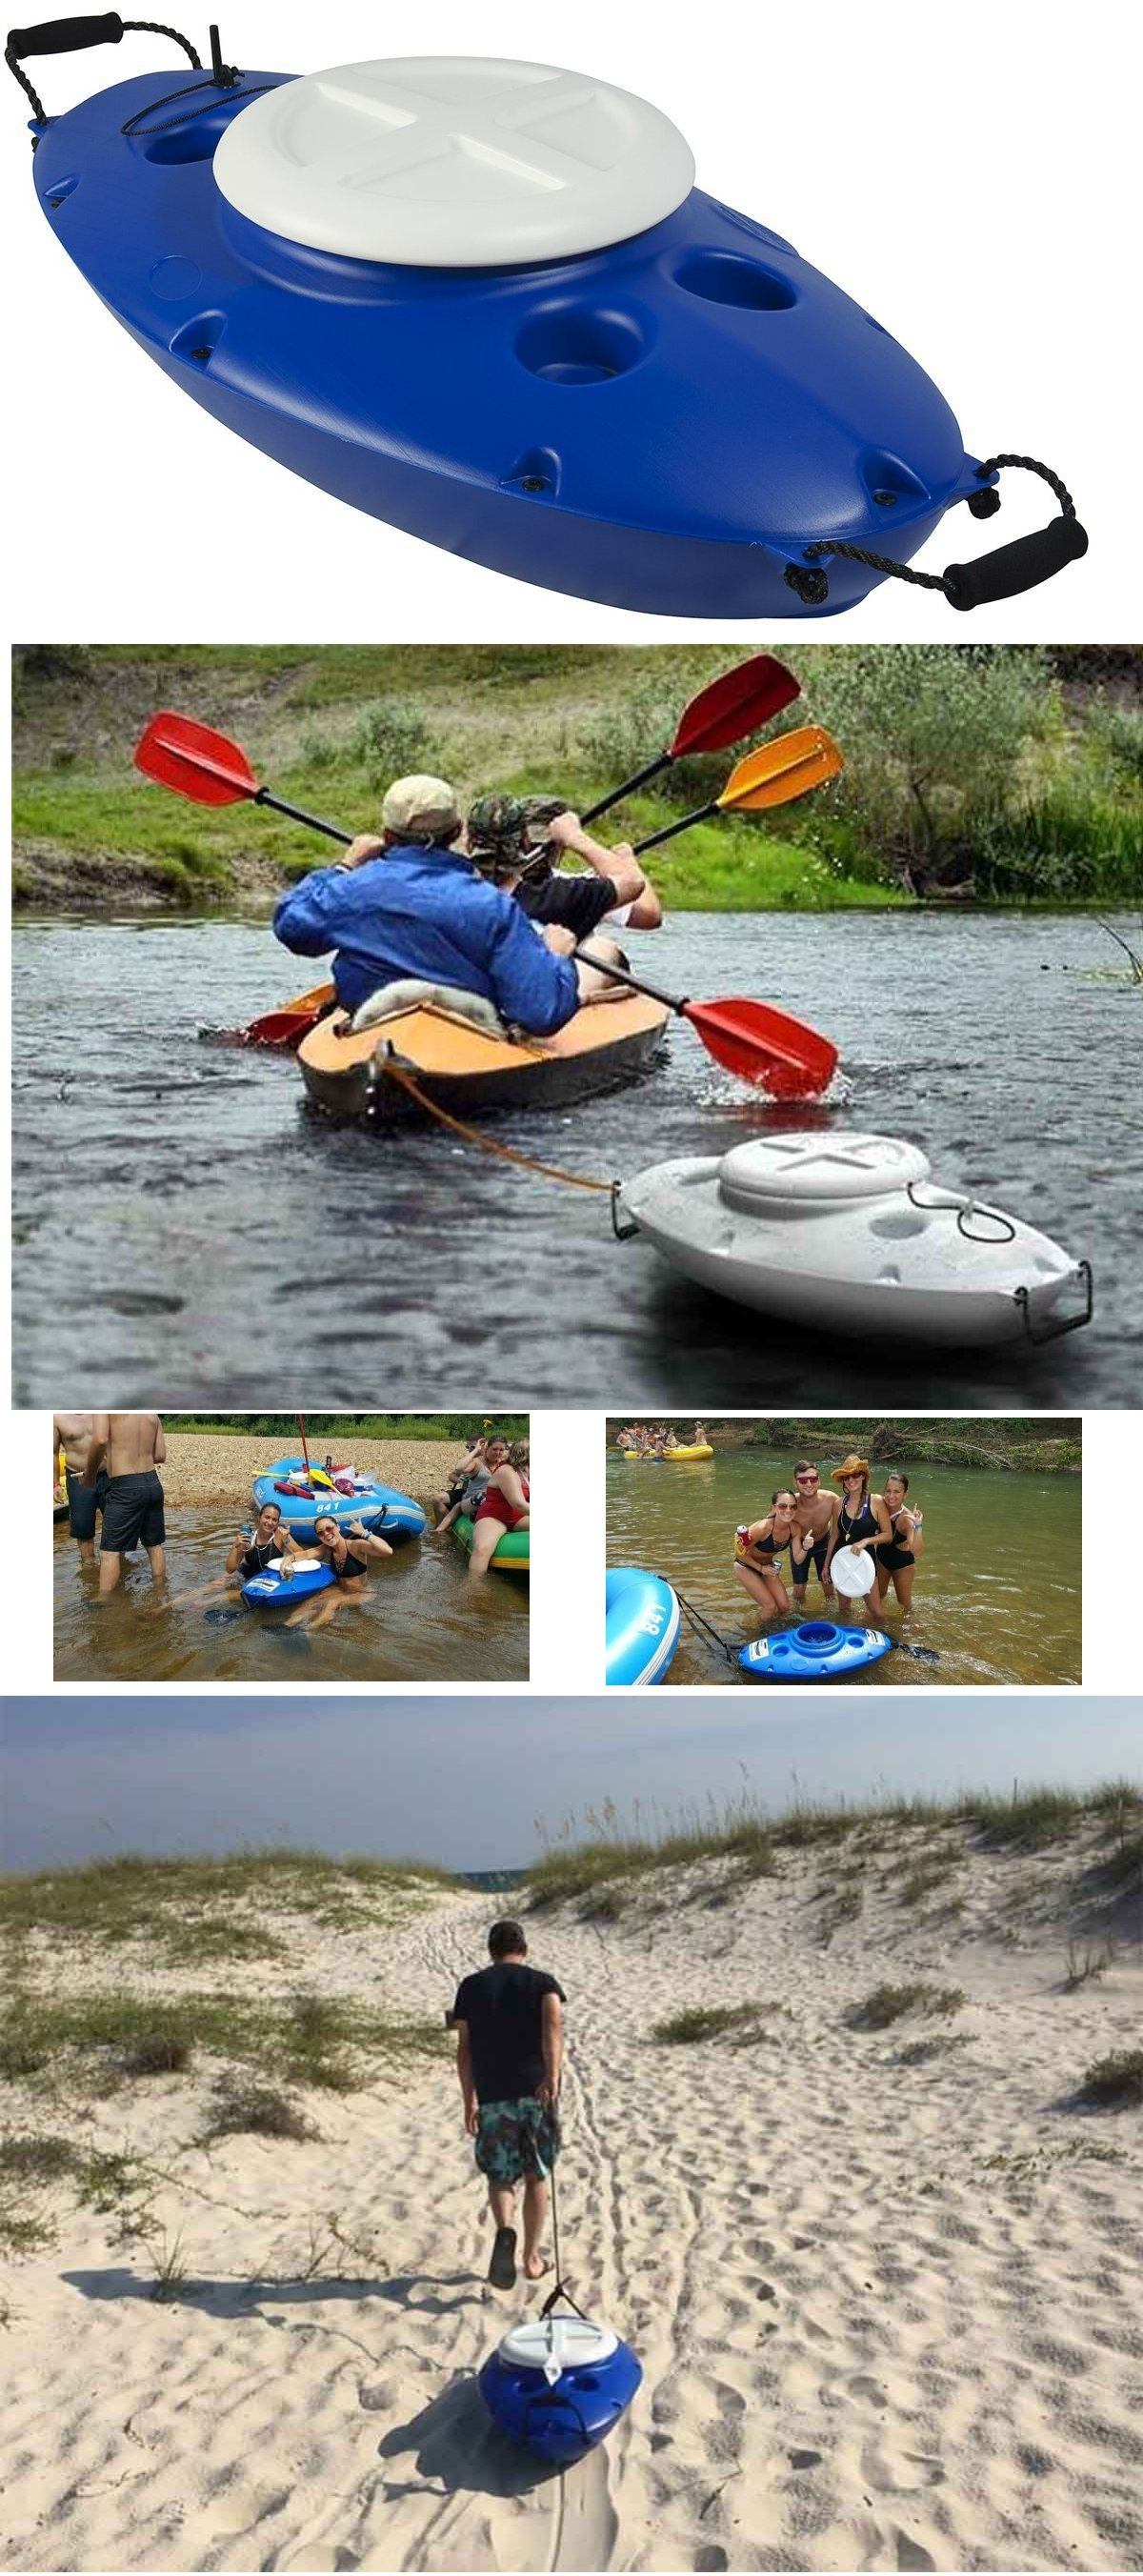 Photo of CreekKooler Floating Cooler, Tow on Rivers and Lakes with Canoe or Kayak, 30 Quart